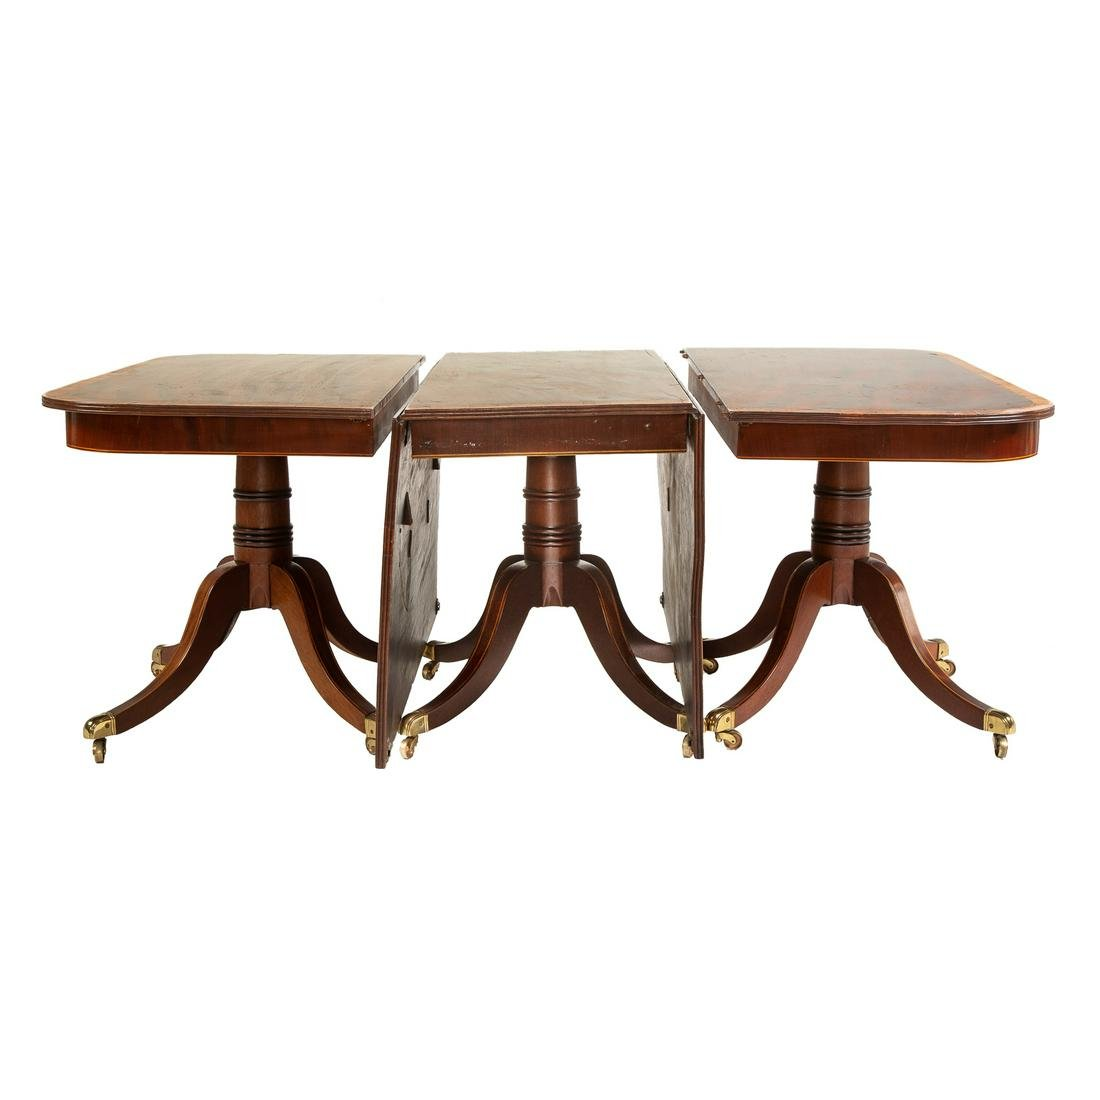 Regency Mahogany Three Pedestal Banquet Table